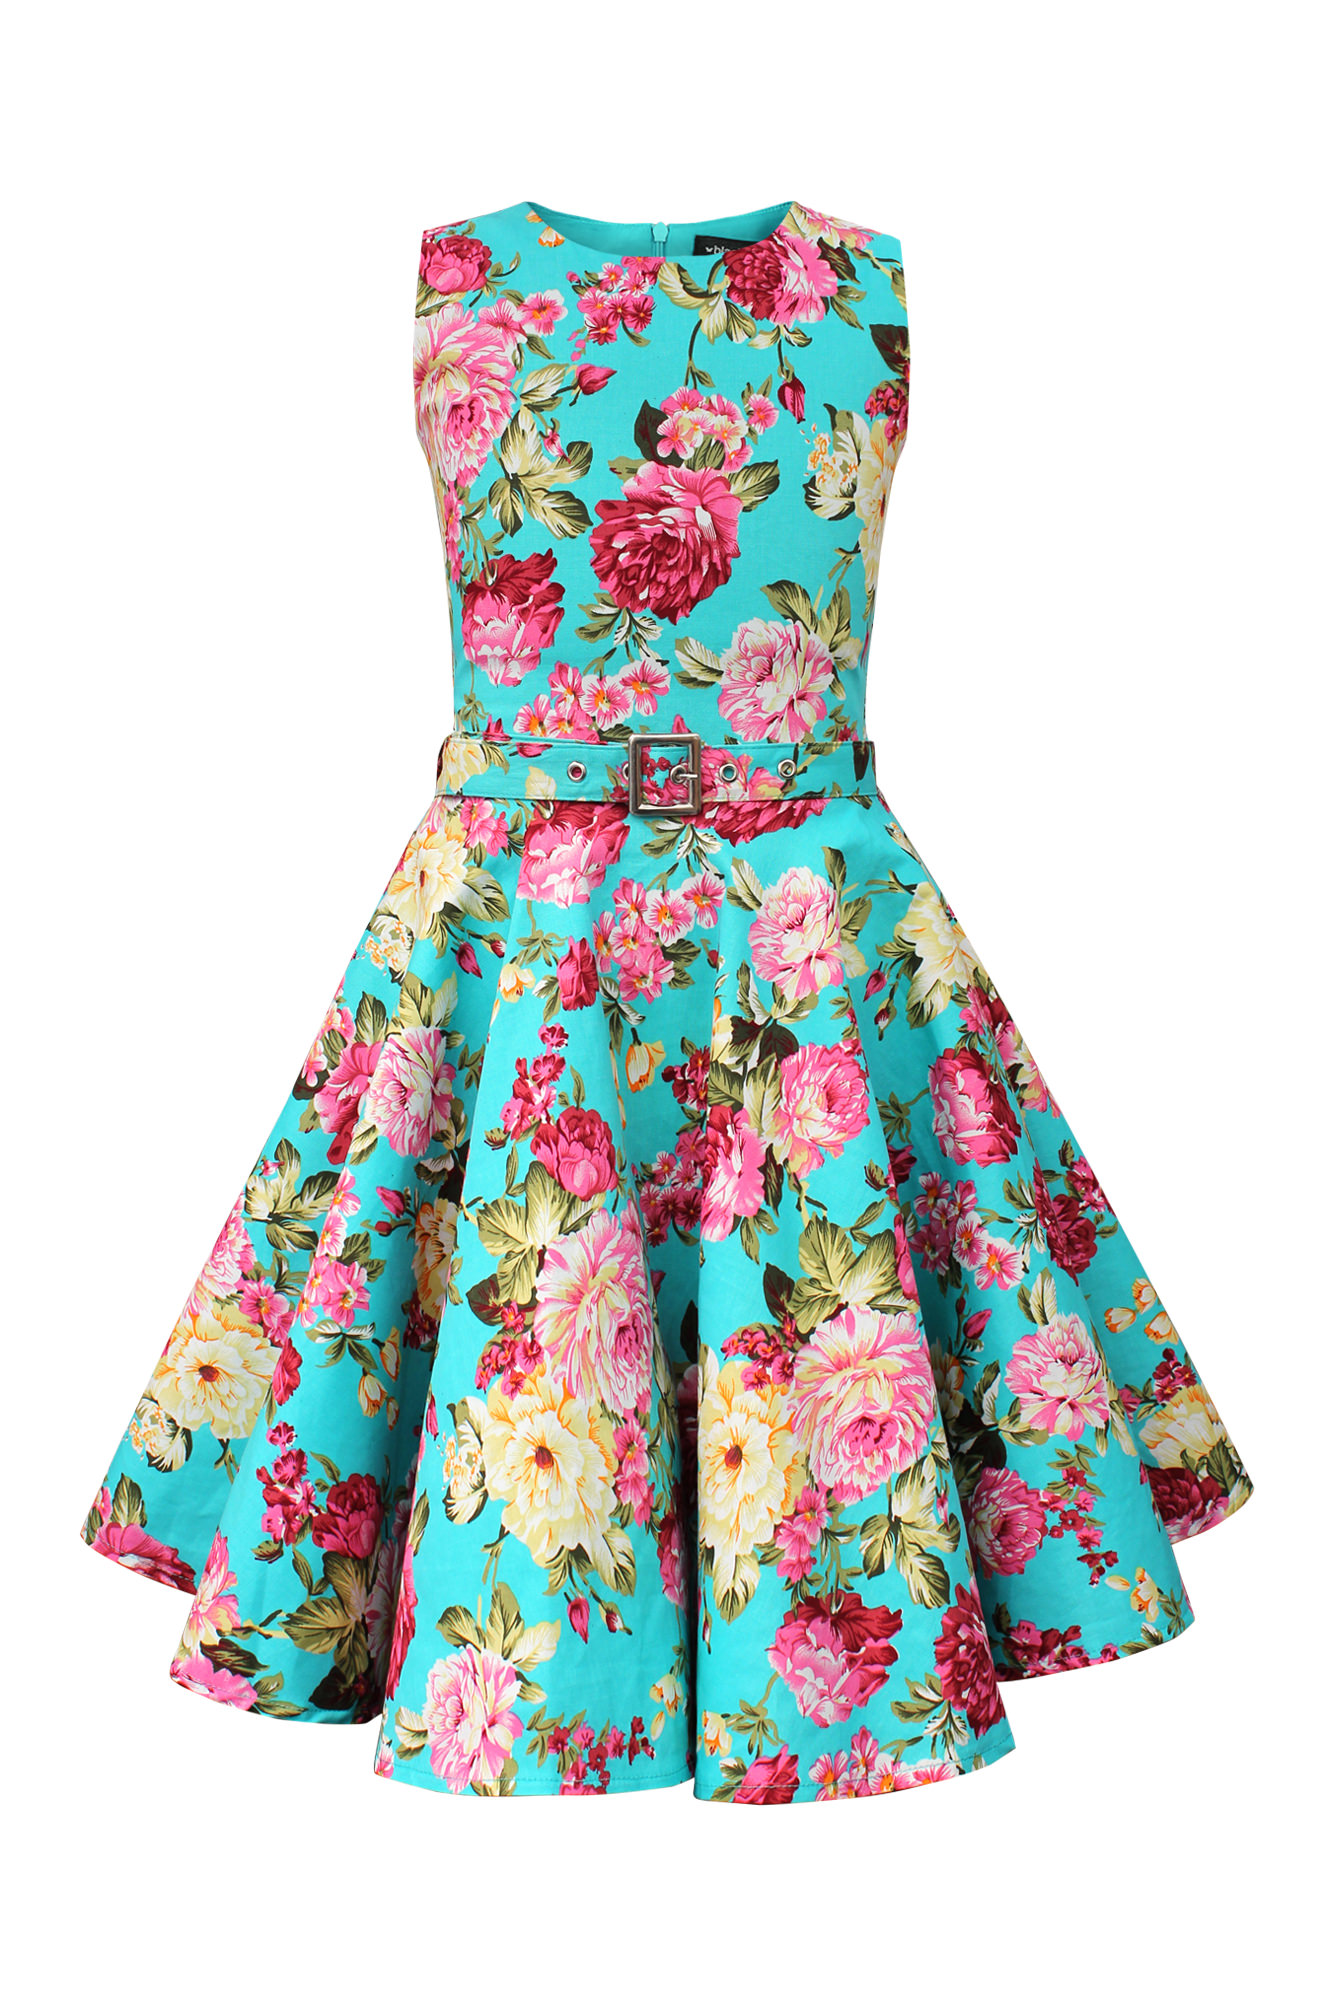 Girls \'Audrey\' Vintage Divinity 50s Inspired Floral Flared Party ...